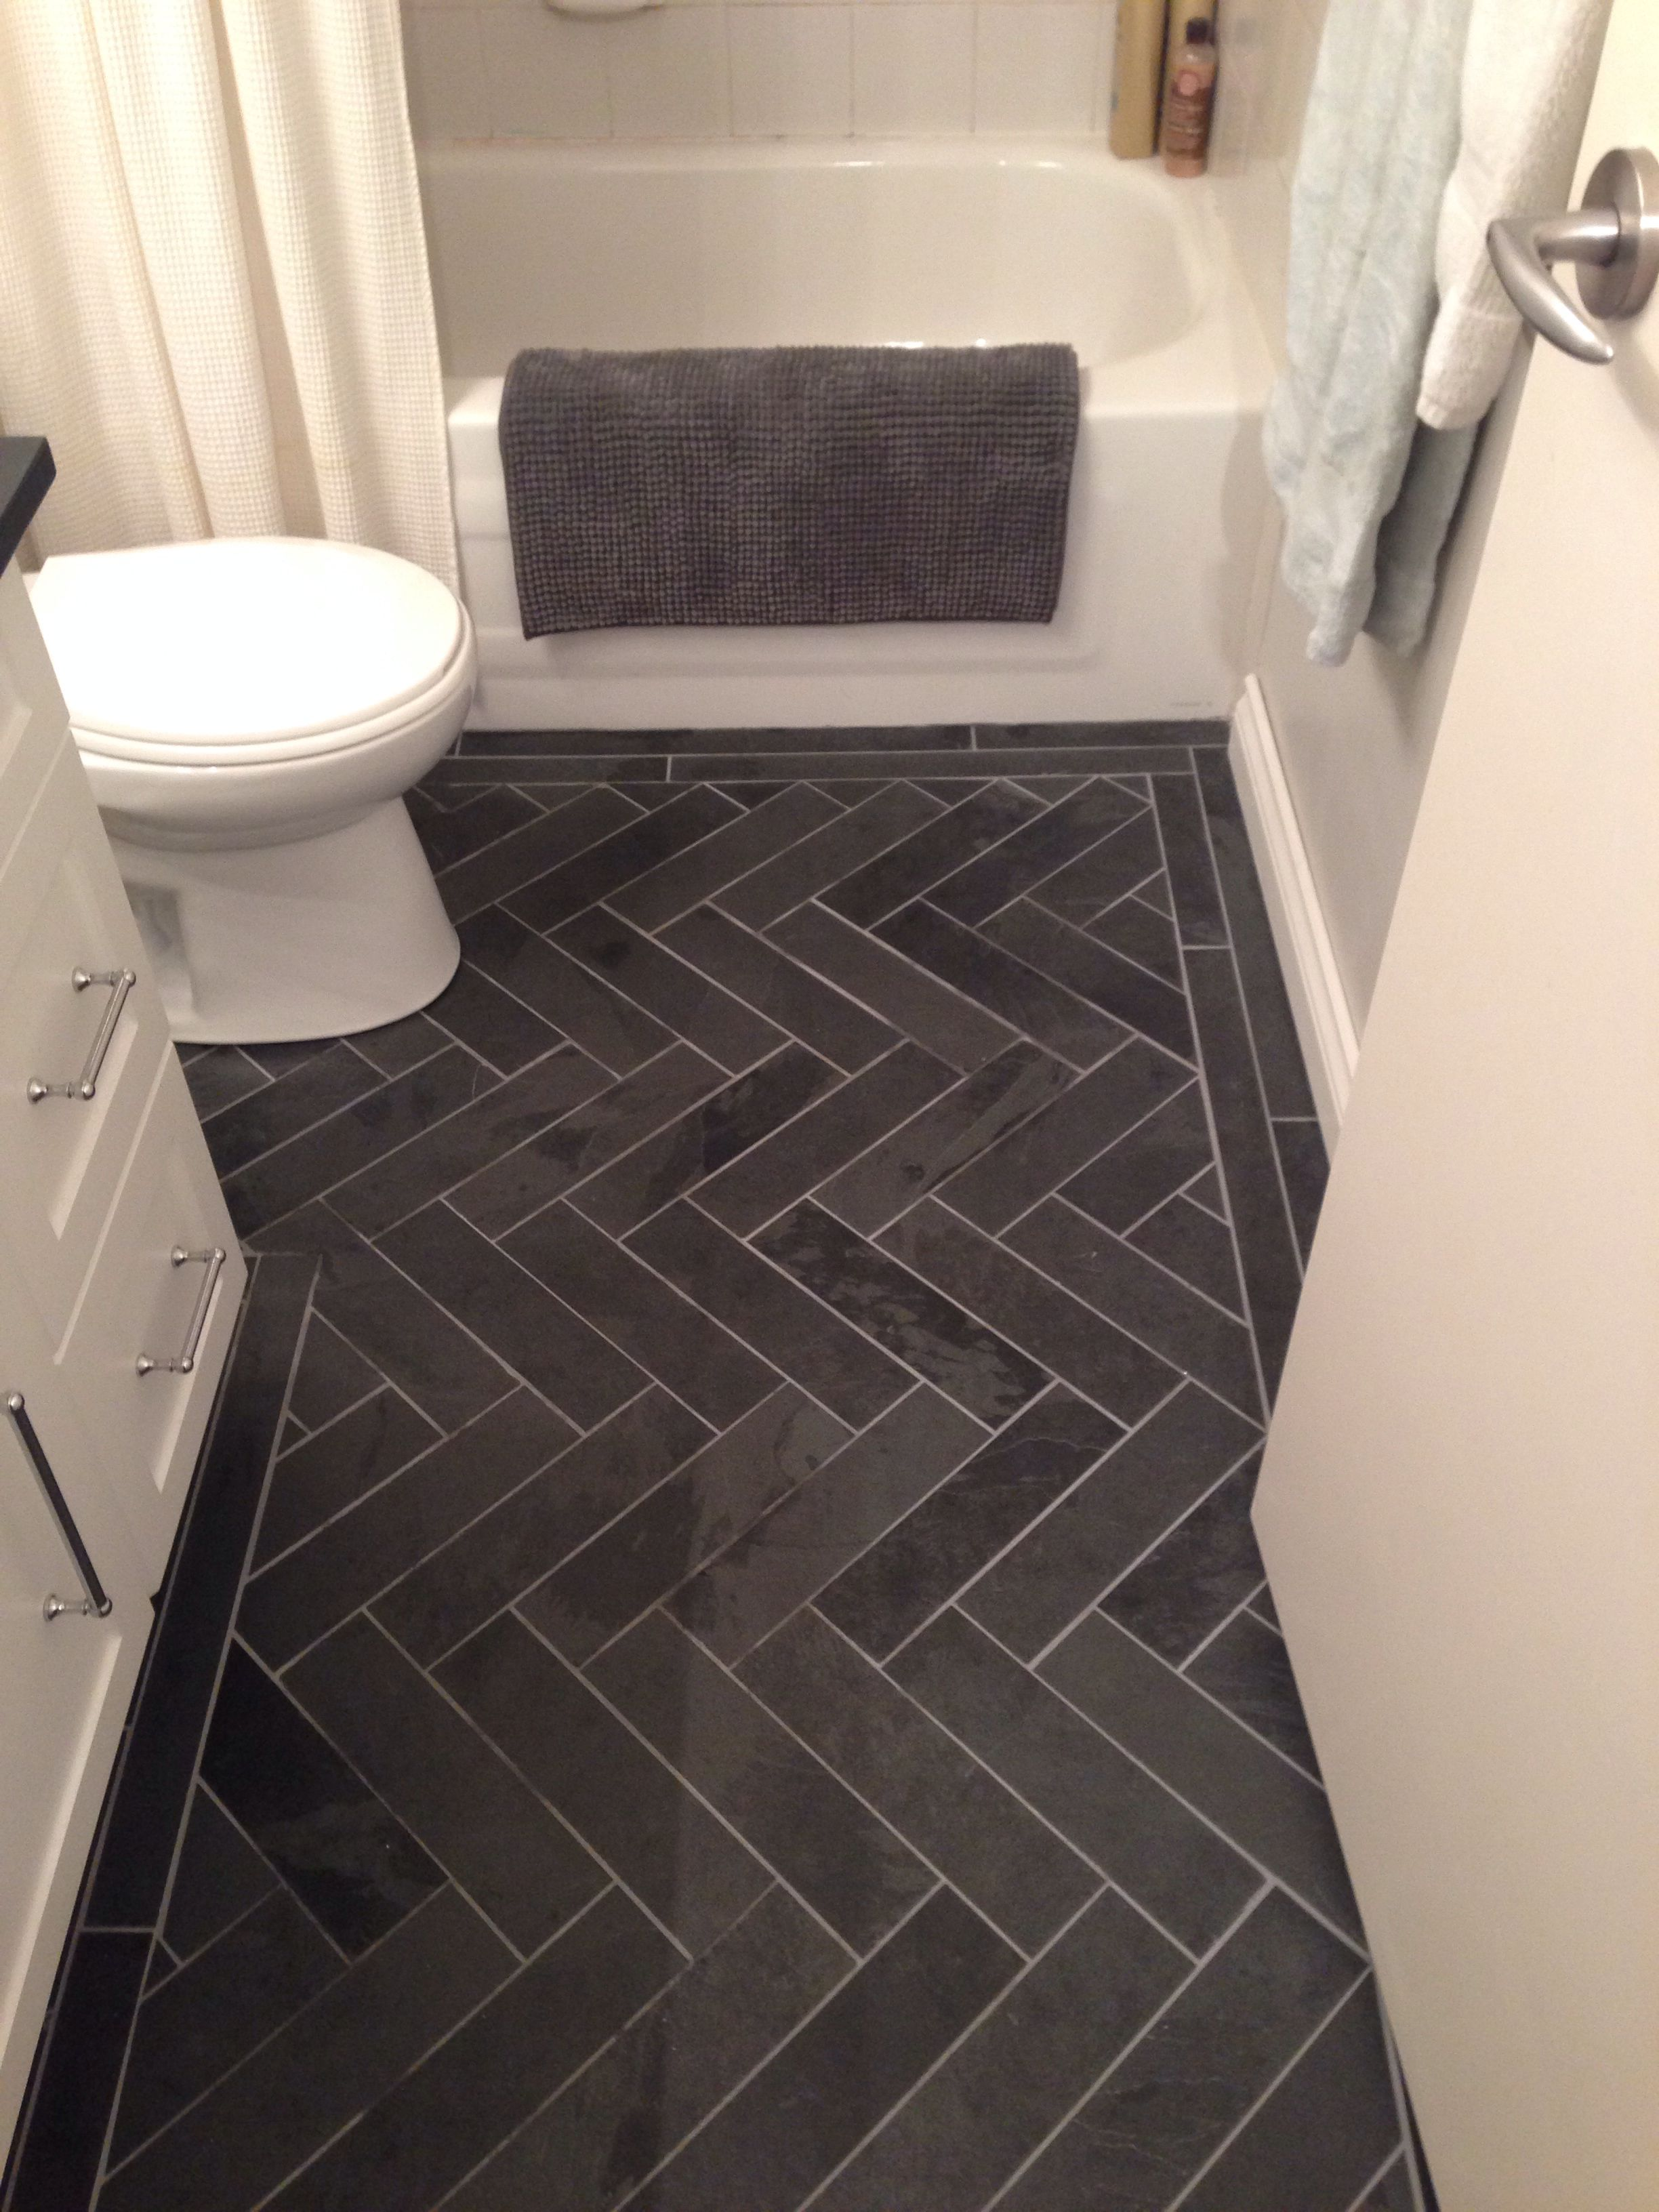 Charcoal Gray Herringbone Honed Marble Floors In The